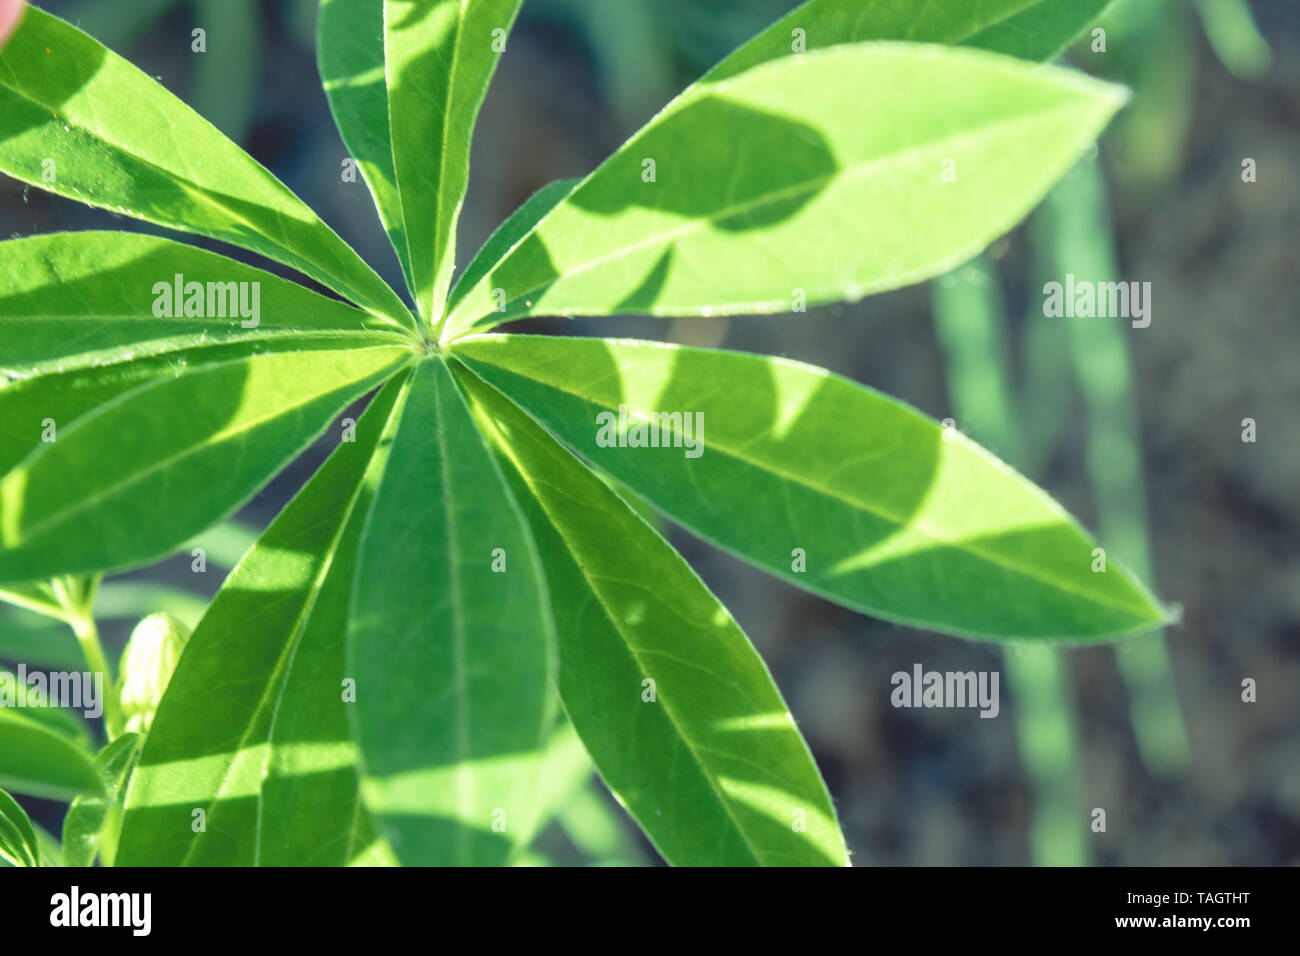 Large green leaves of flowers close up. Stock Photo